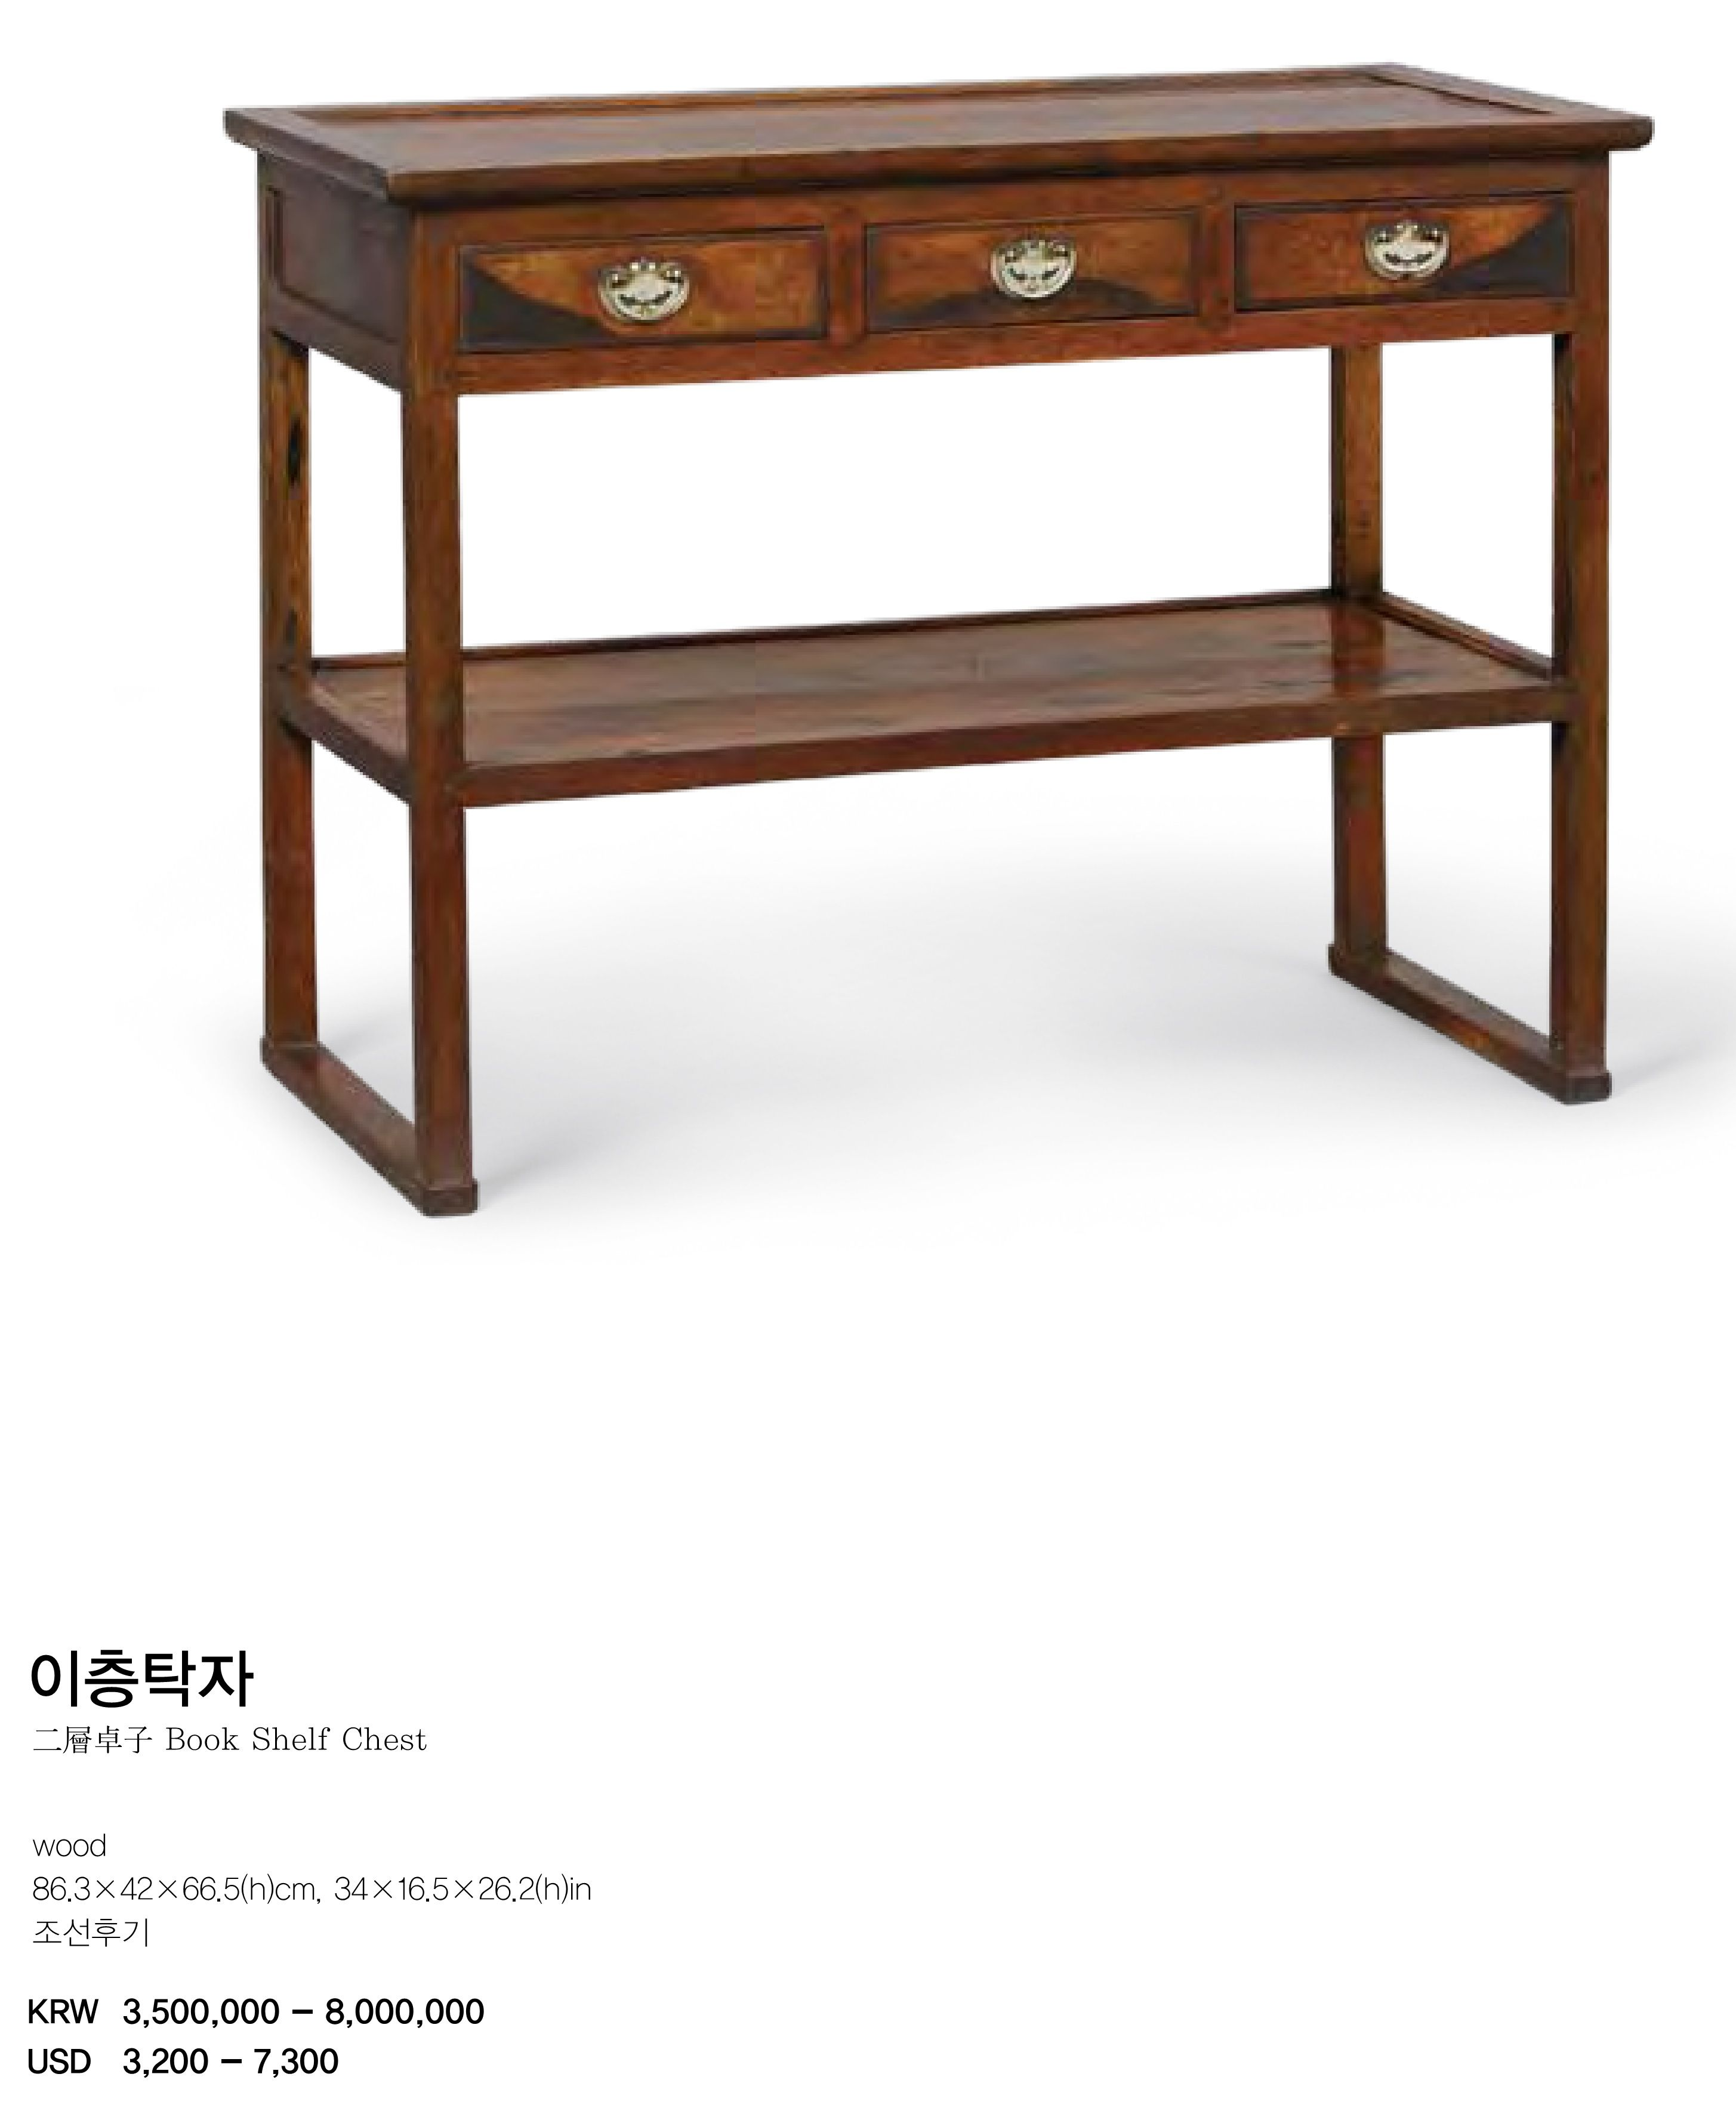 Persimmon Wood Desk Objects In 2018 Pinterest Furniture Wood